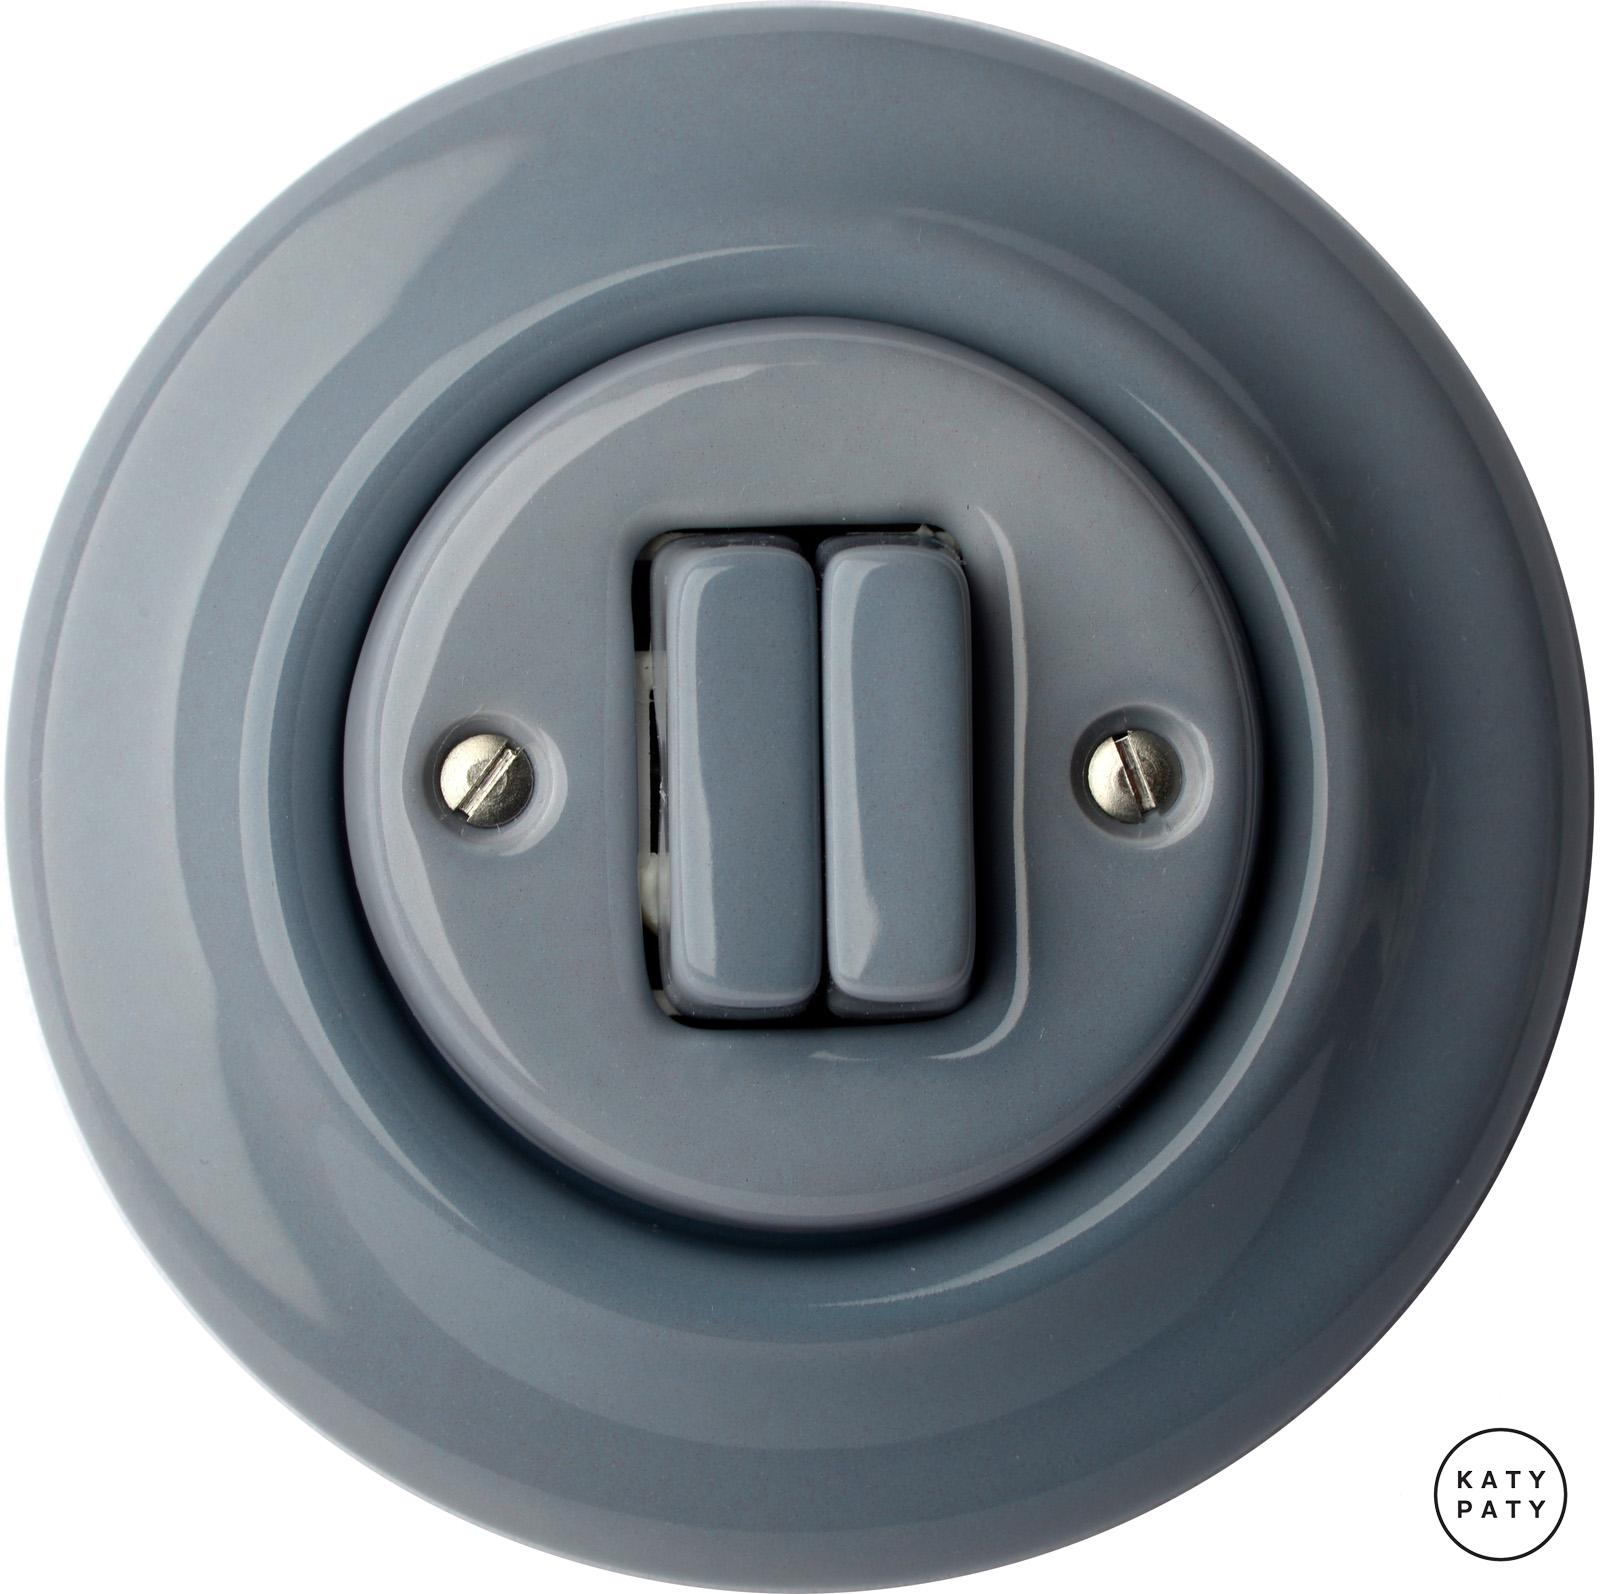 Katy Paty | Porcelain switches - a double key ()  - COLUMBA